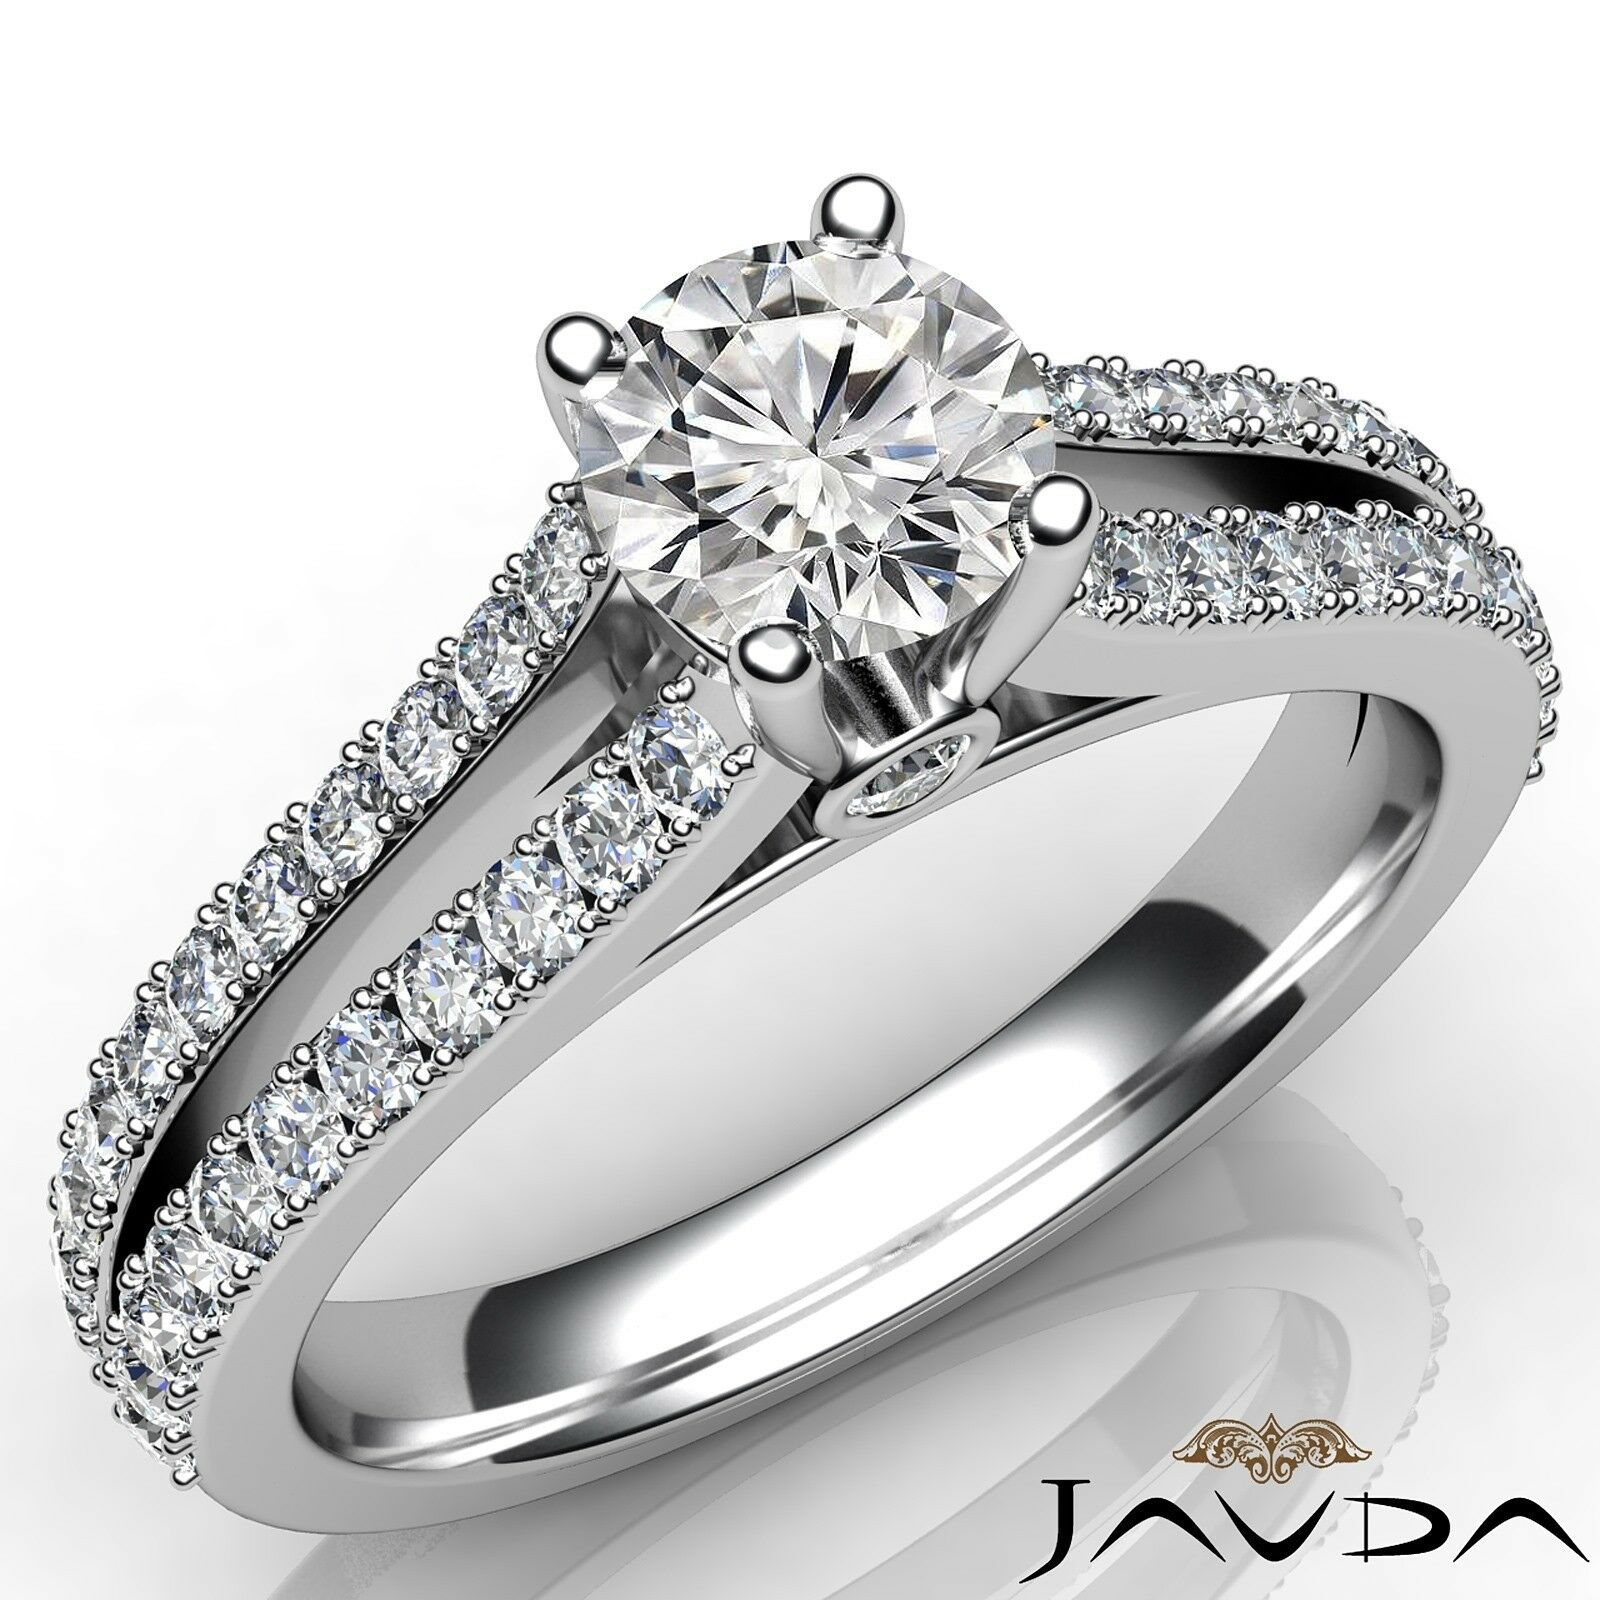 1.05ctw Classic 4 Prong Round Diamond Engagement Ring GIA F-VVS2 White Gold New